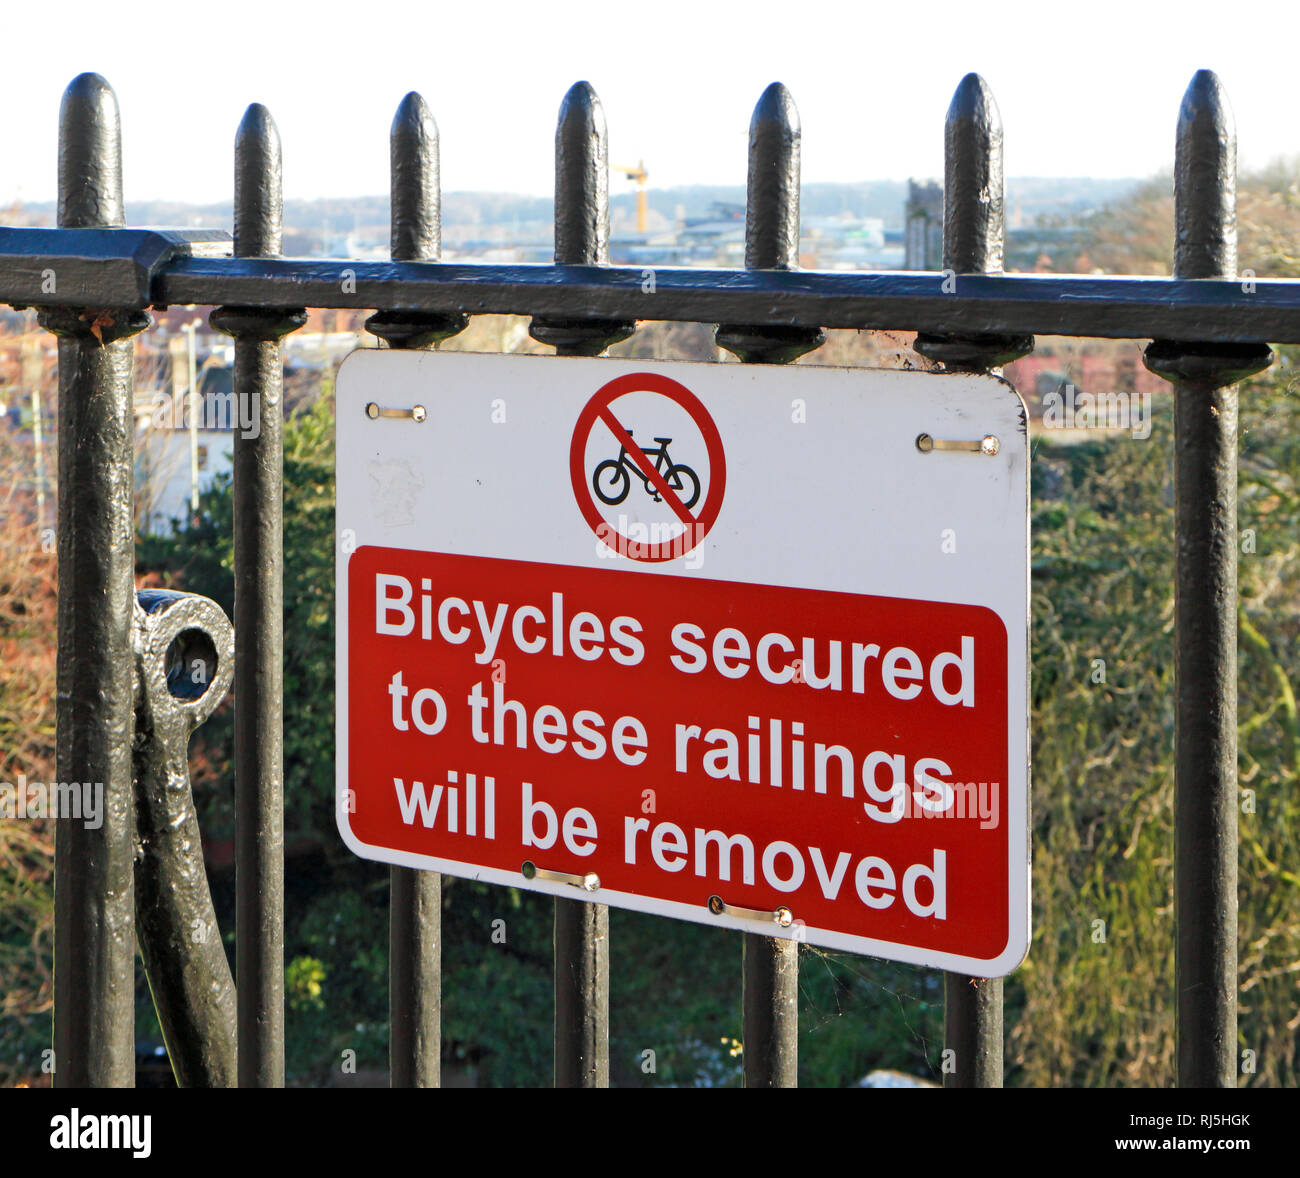 Warning notice that Bicycles secured to these railings will be removed on the Castle mound at Norwich, Norfolk, England, United Kingdom, Europe. - Stock Image